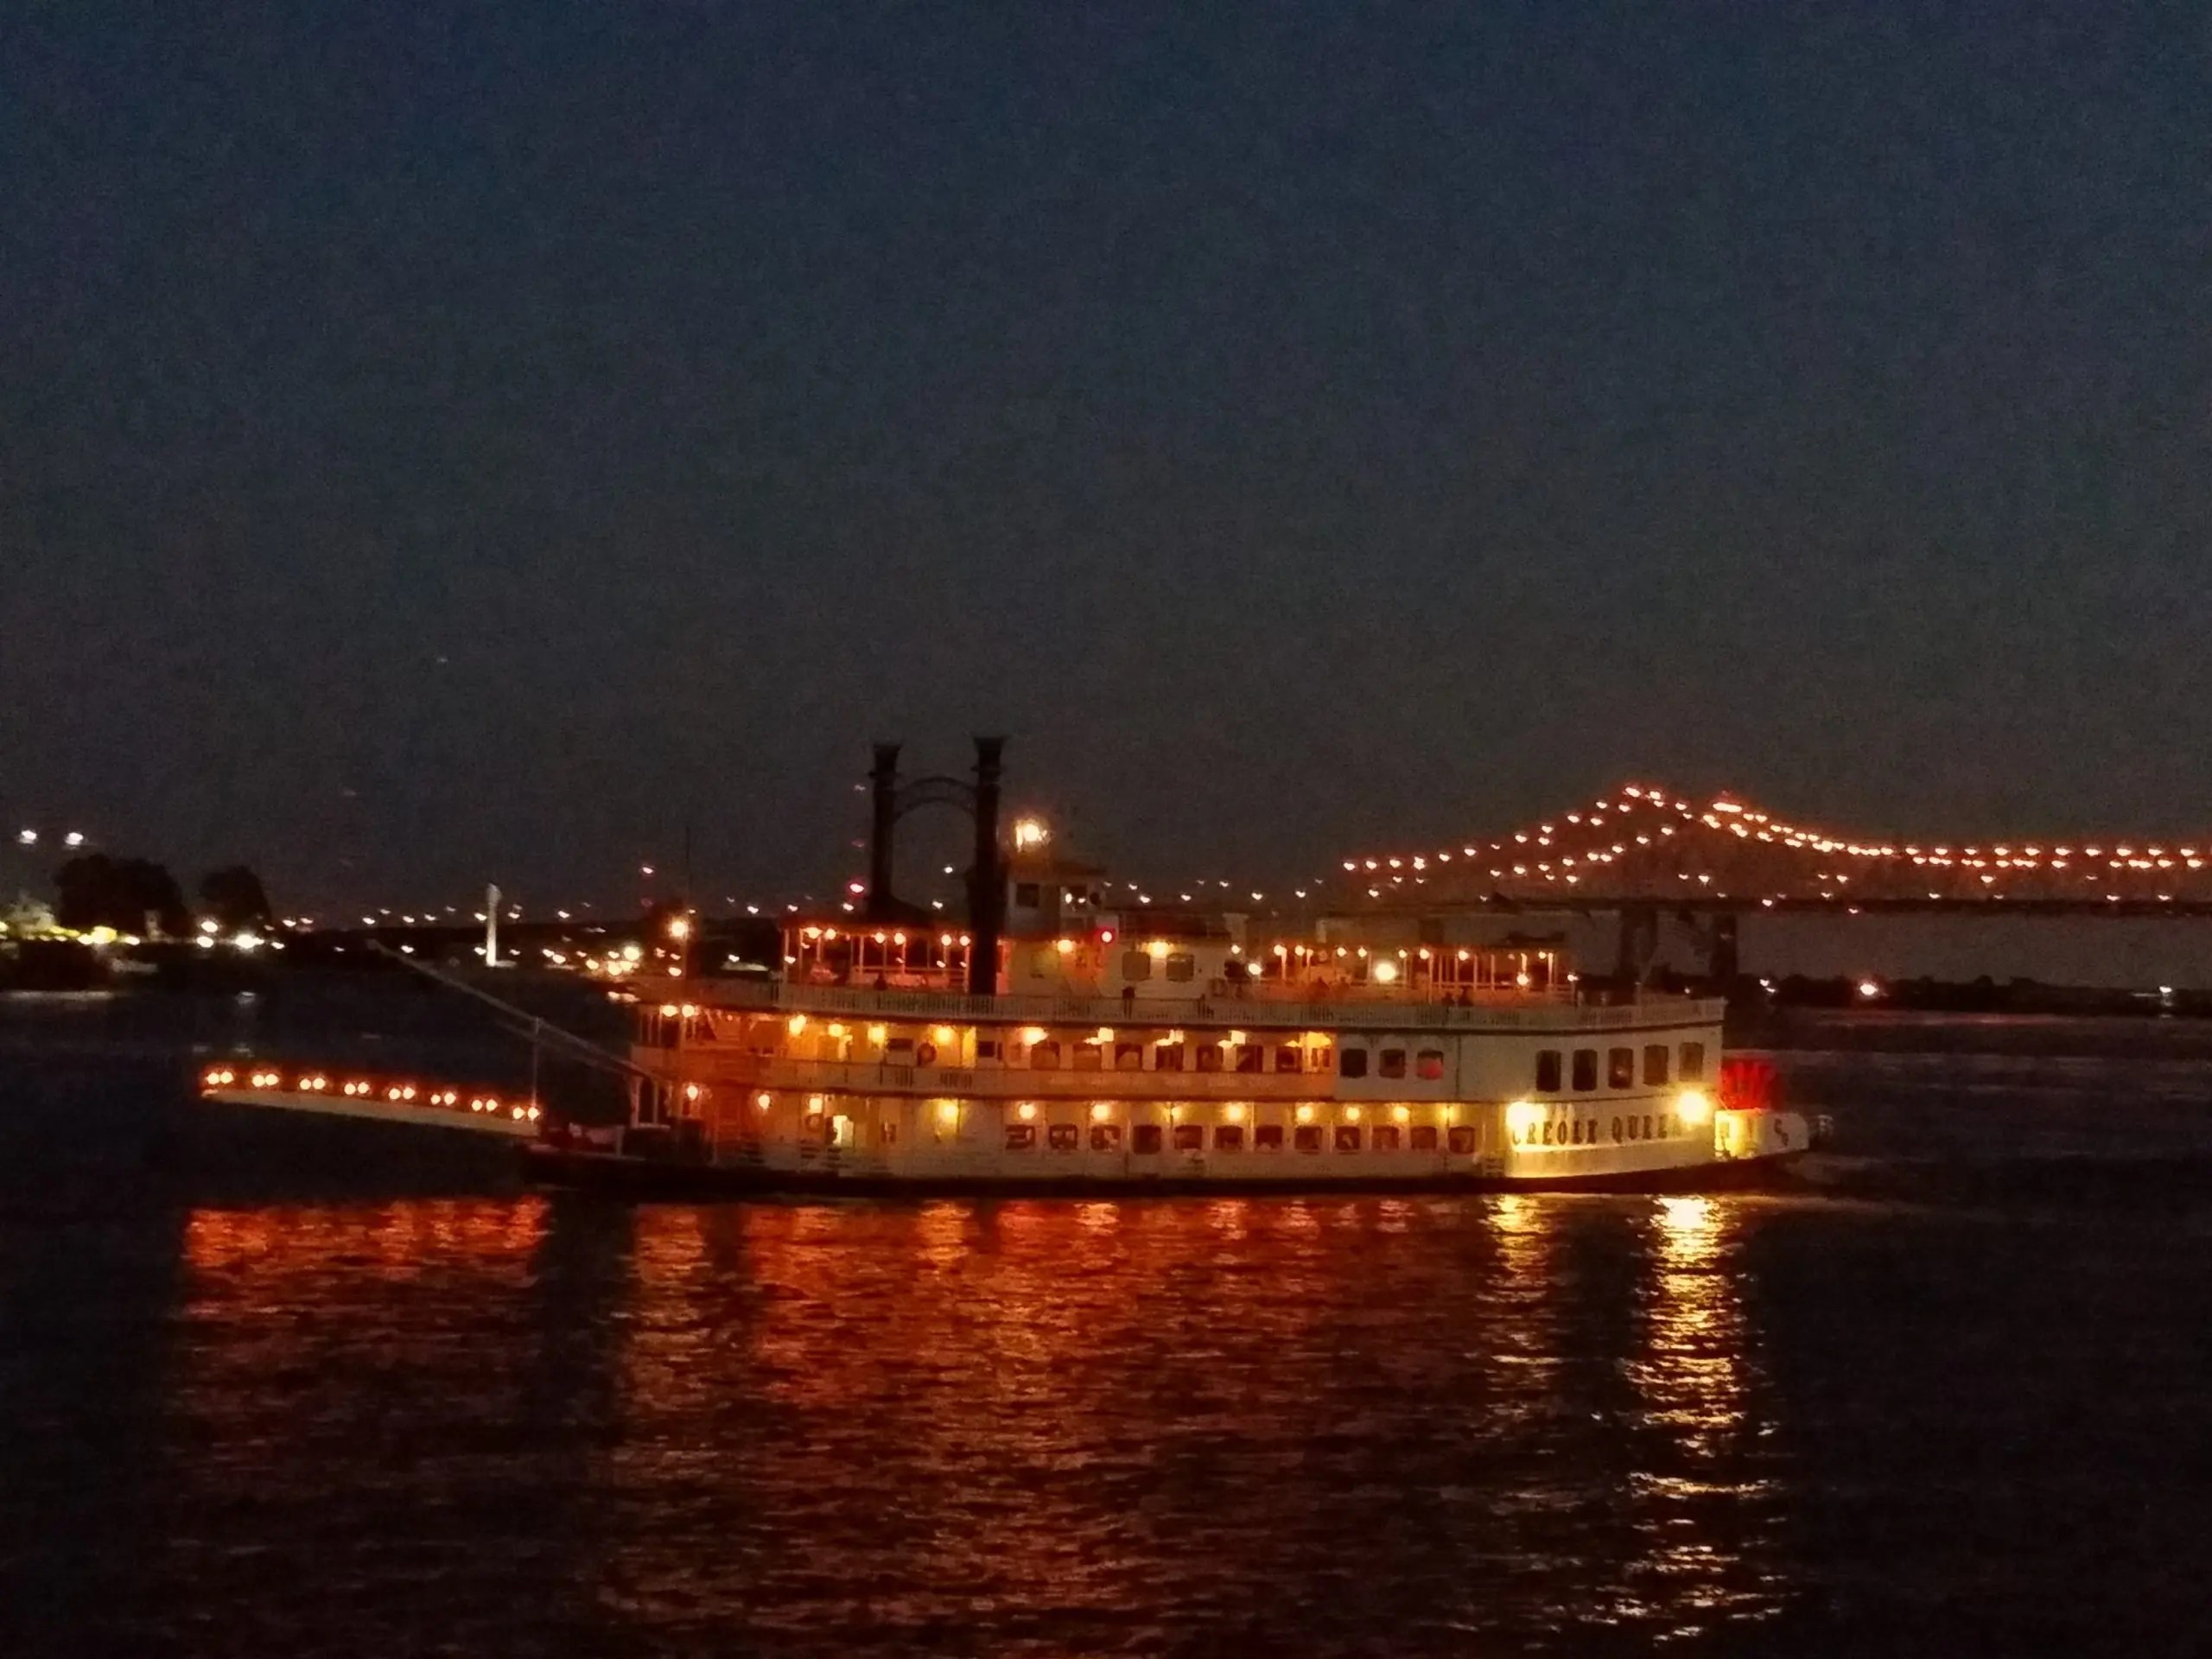 50 great plans for romance, steamboats, dinner cruises, New Orleans